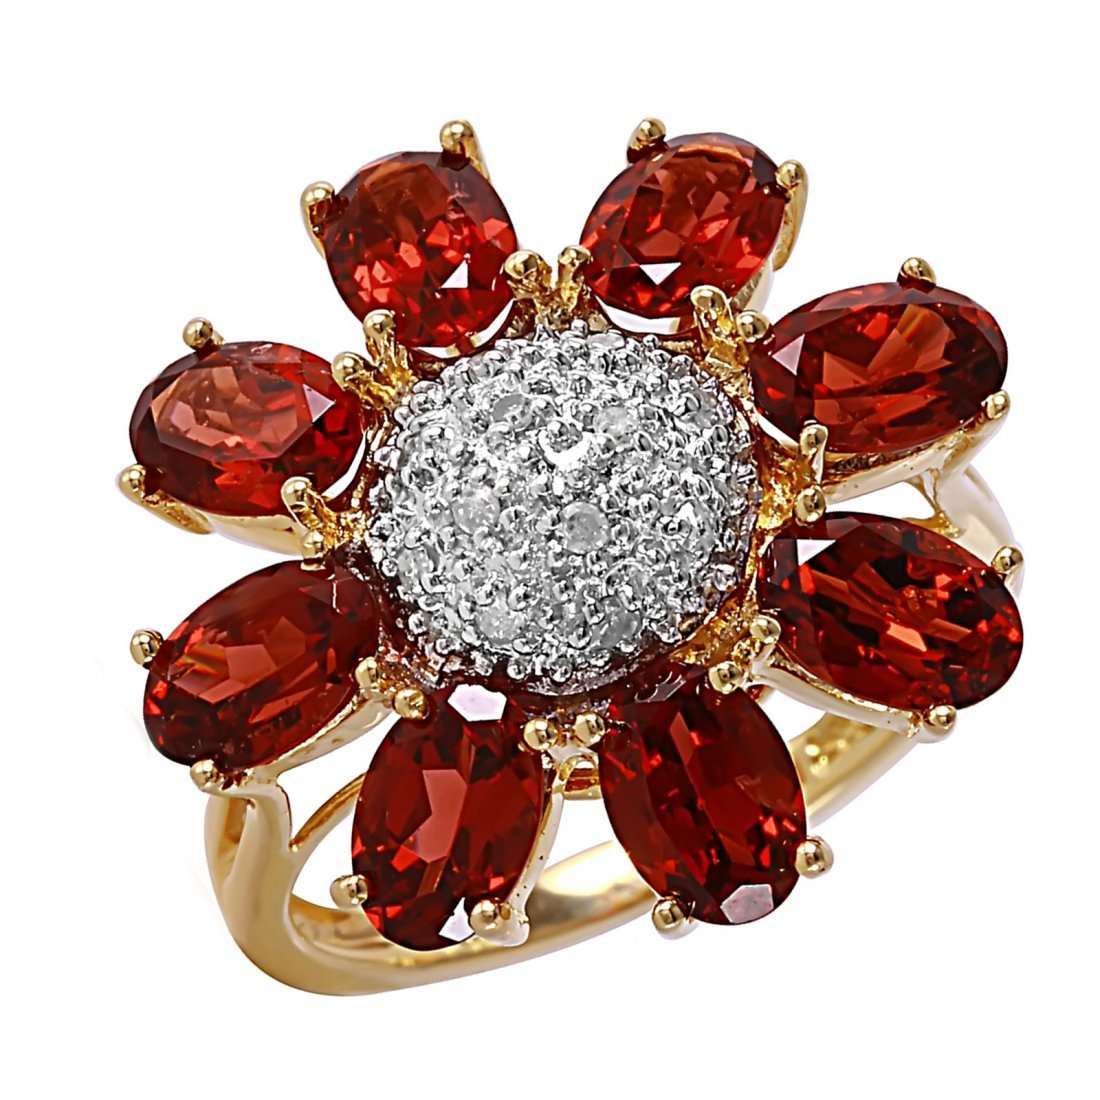 This cocktail ring features oval cut pyrope garnets